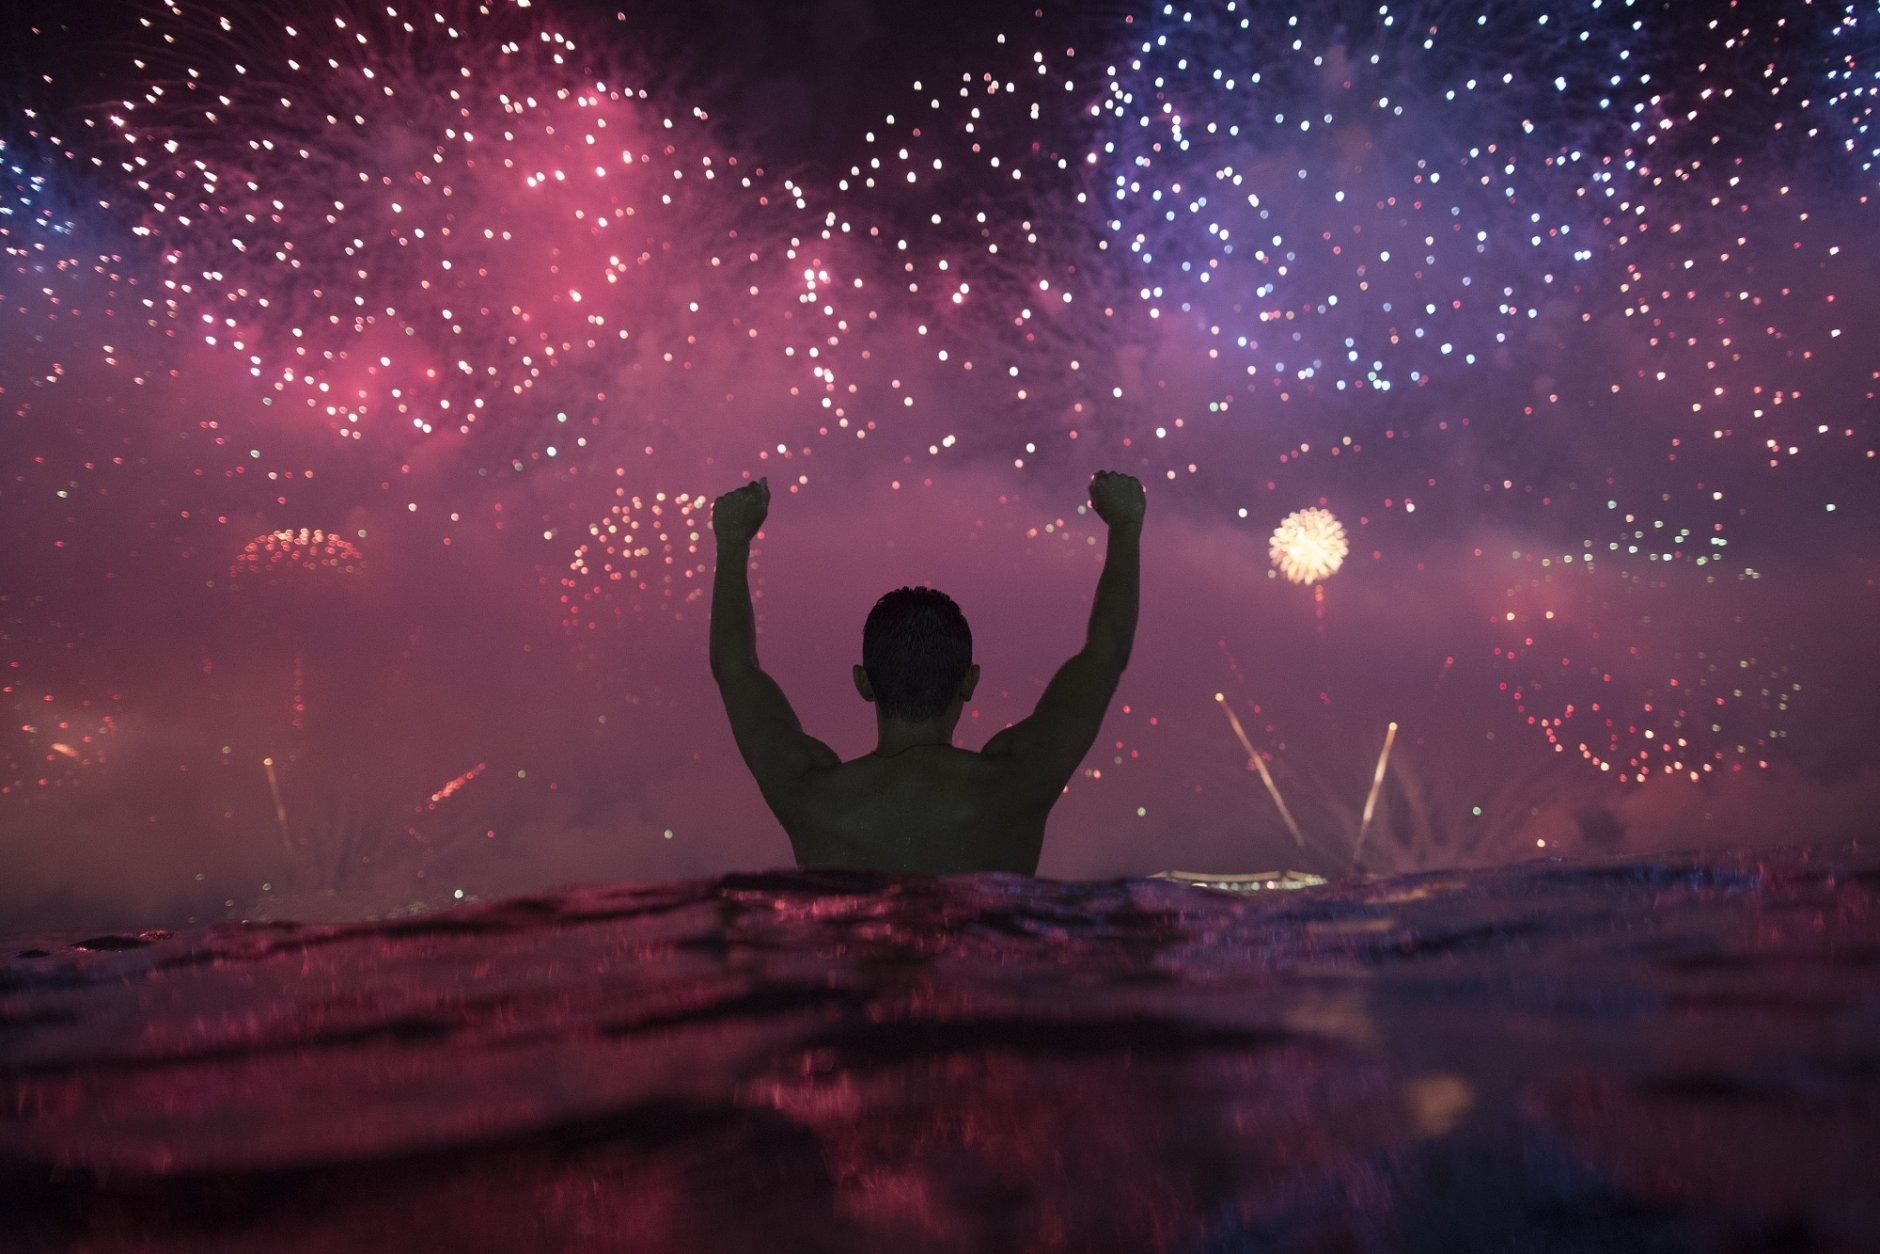 A man watches the fireworks exploding over Copacabana Beach during the New Year's celebrations in Rio de Janeiro, Brazil, Tuesday, Jan. 1, 2019. (AP Photo/Leo Correa)